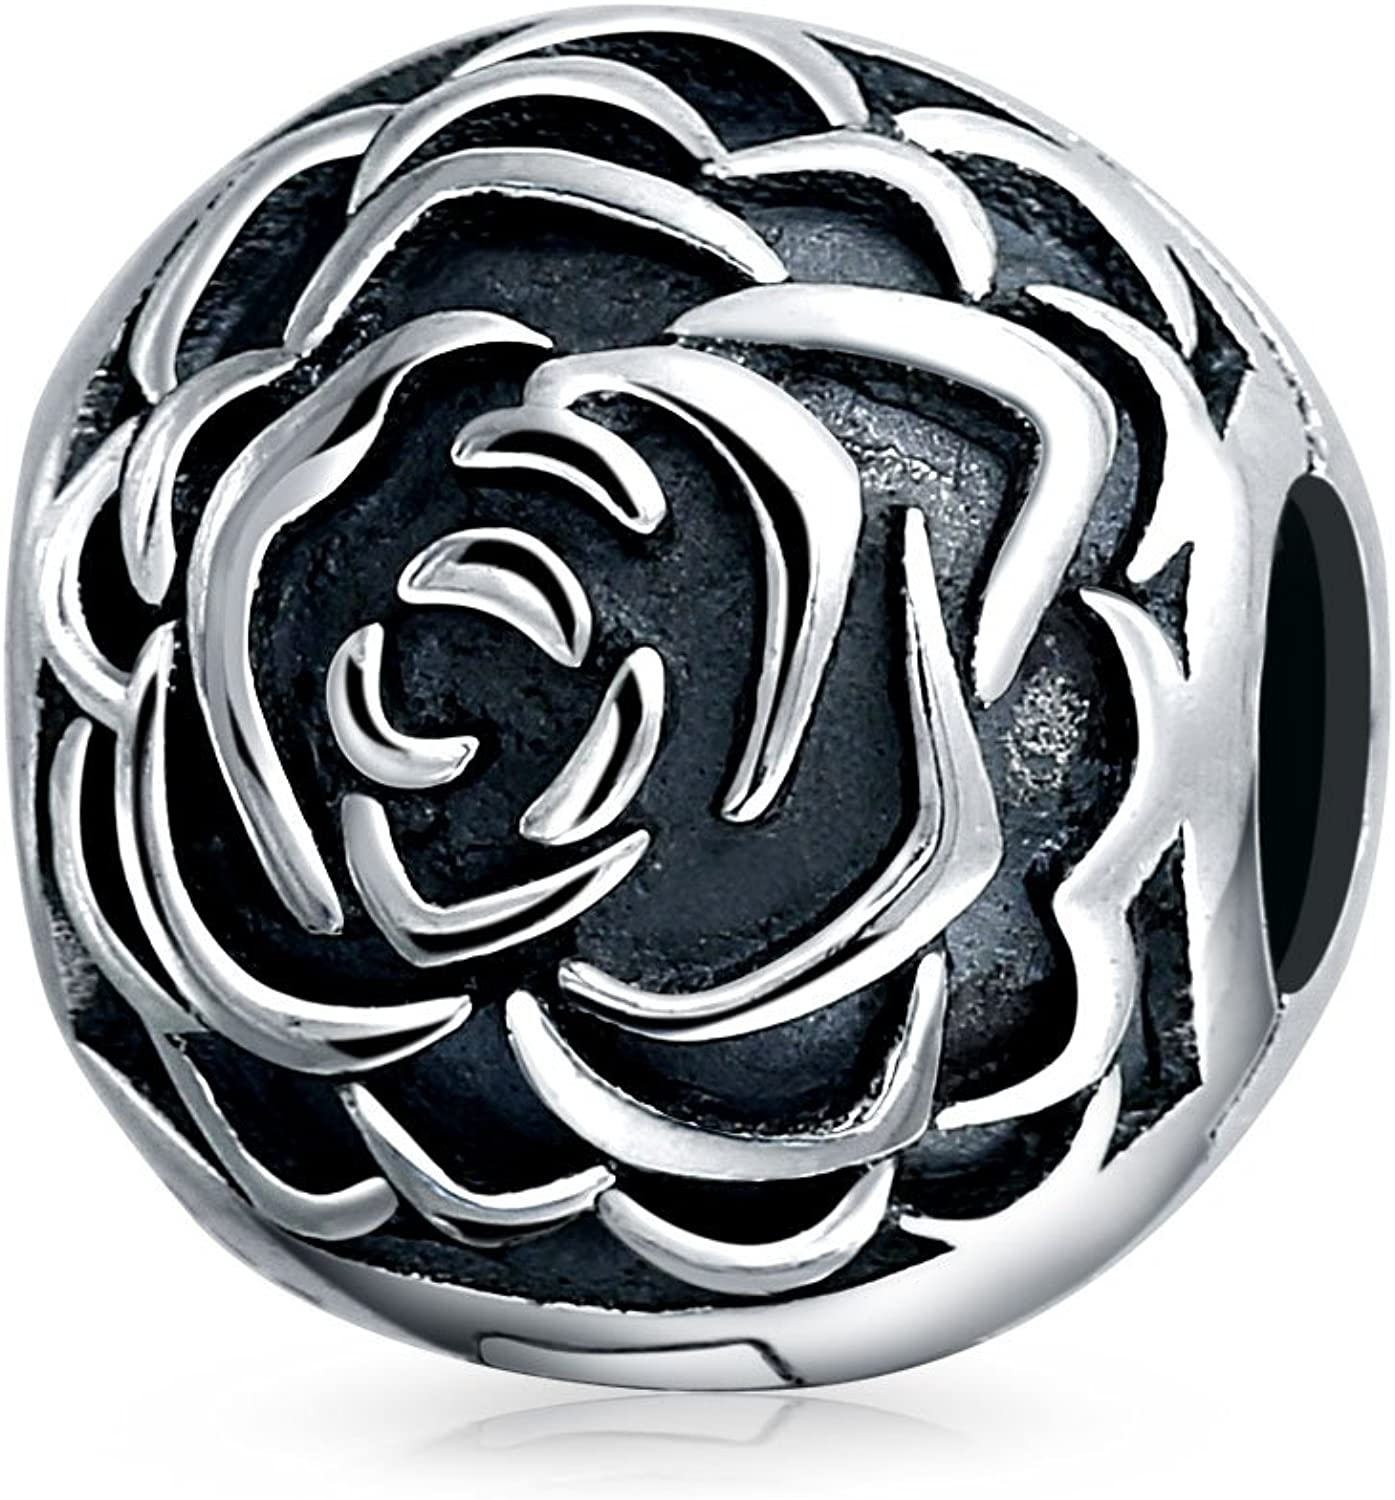 Rose Bloom Floral Barrel Spacer Stopper Bead Charm For Women Oxidized Sterling Silver Snap Clasp Fits European Bracelet